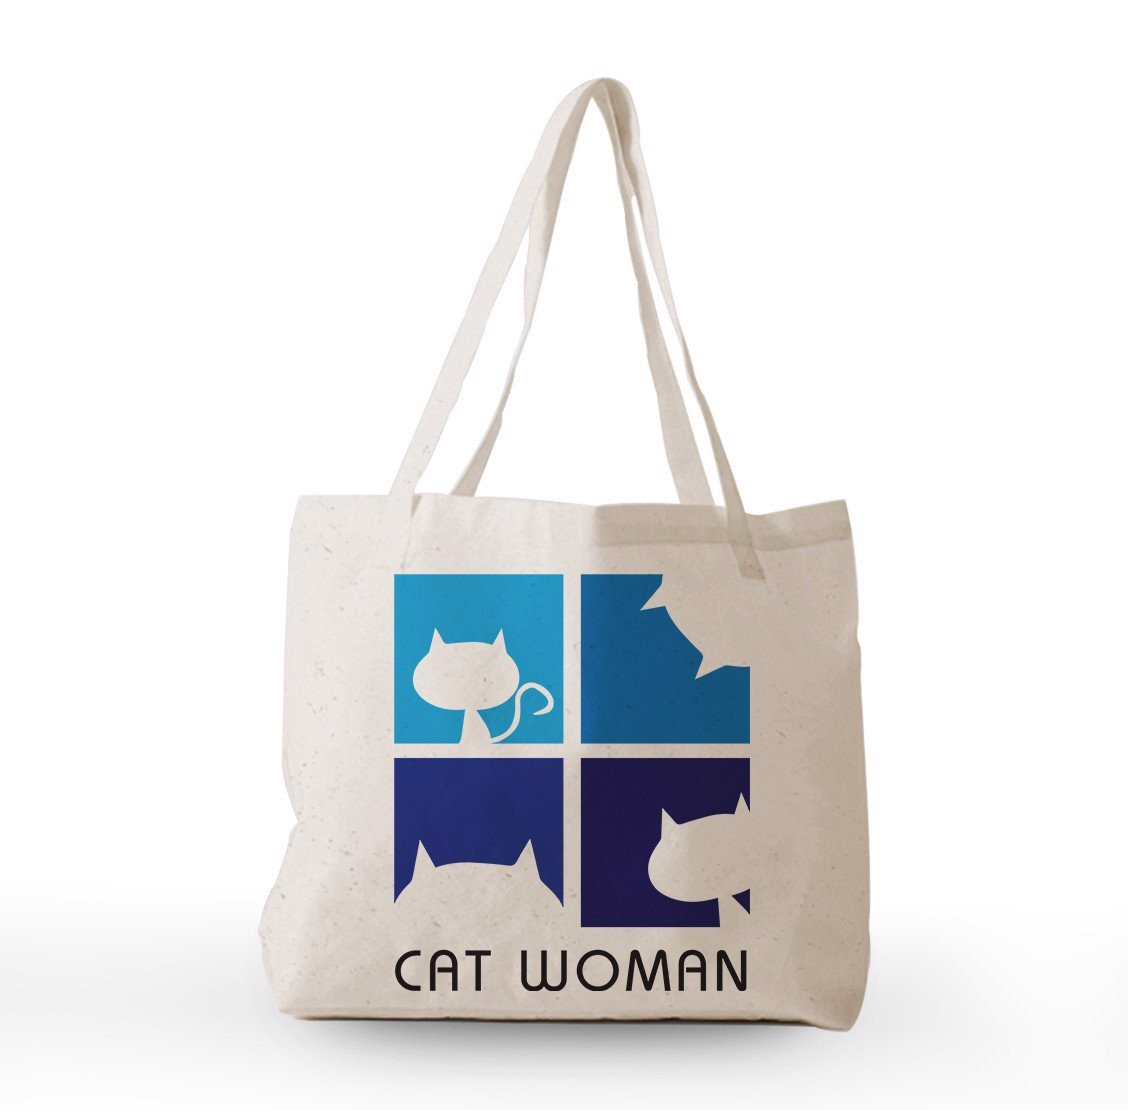 Tote Bag - Cat woman